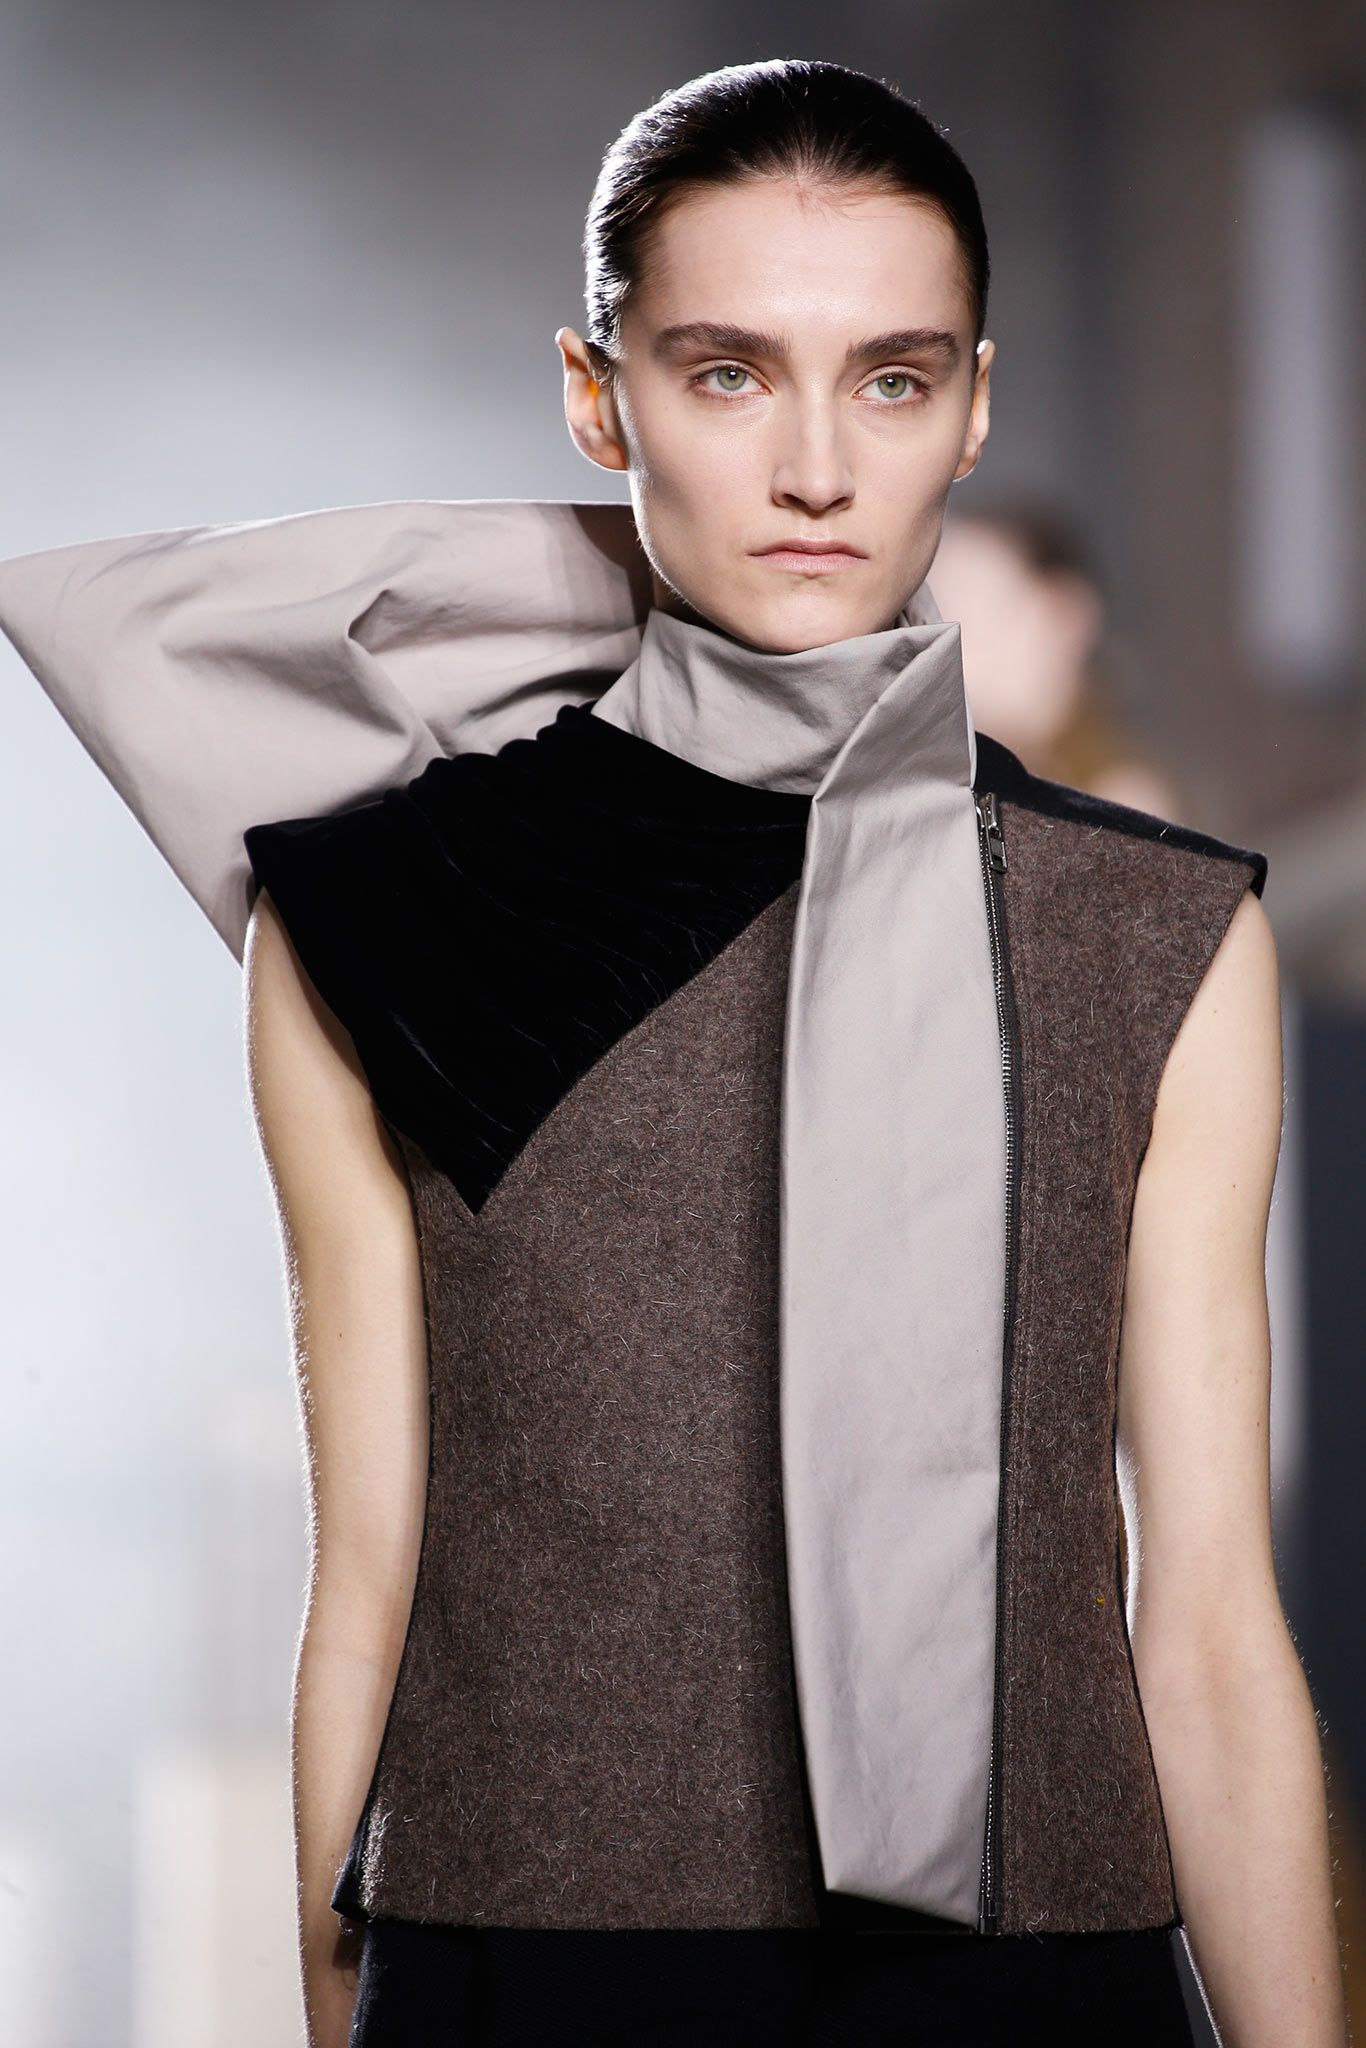 Structured vest with sculpted folds of fabric; fashion details // Rick Owens Fall 2015